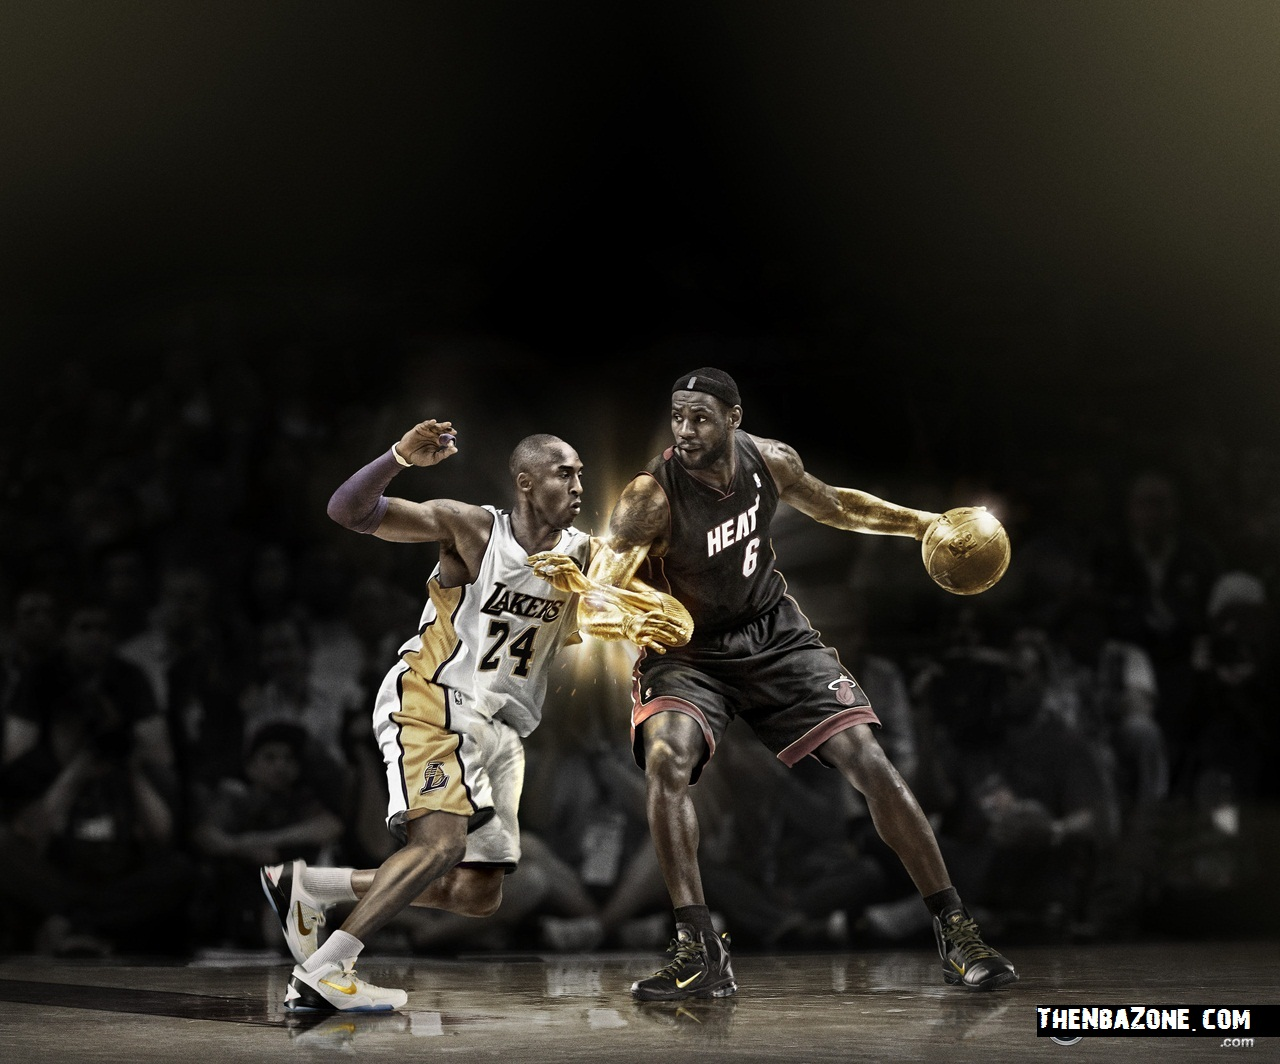 Lebron James and Kobe Bryant NBA Payoffs 2012 HD Wallpaper